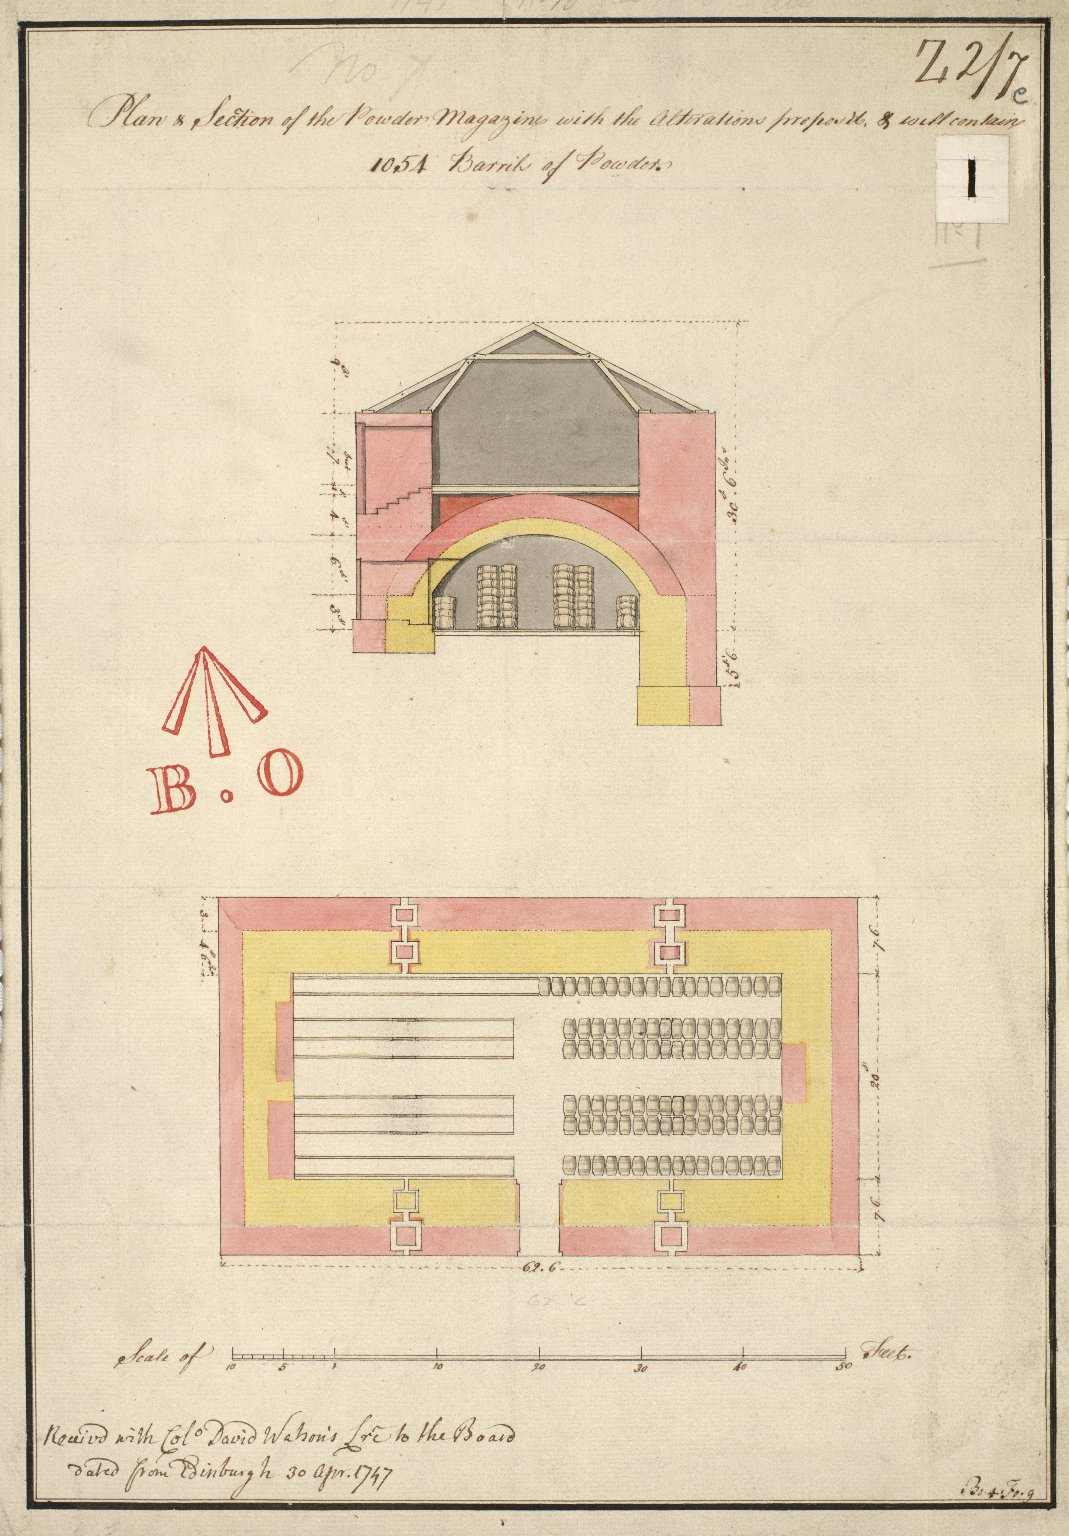 Plan & section of the powder magazine with the alterations propos'd, & will contain 1054 barrils of powder [1 of 1]